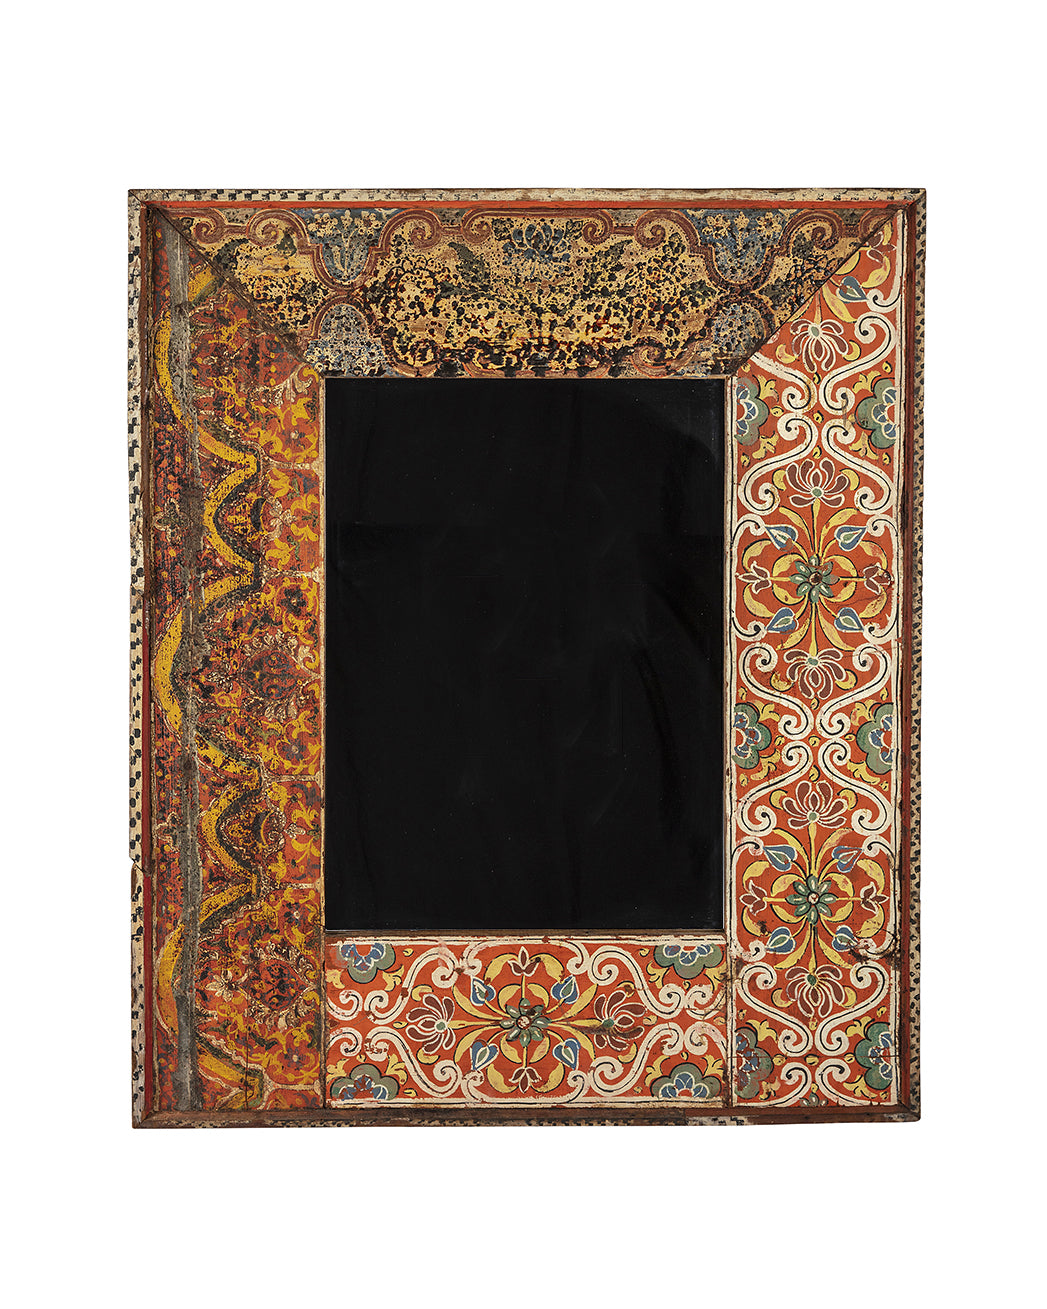 Mirror with a polychrome wooden frame